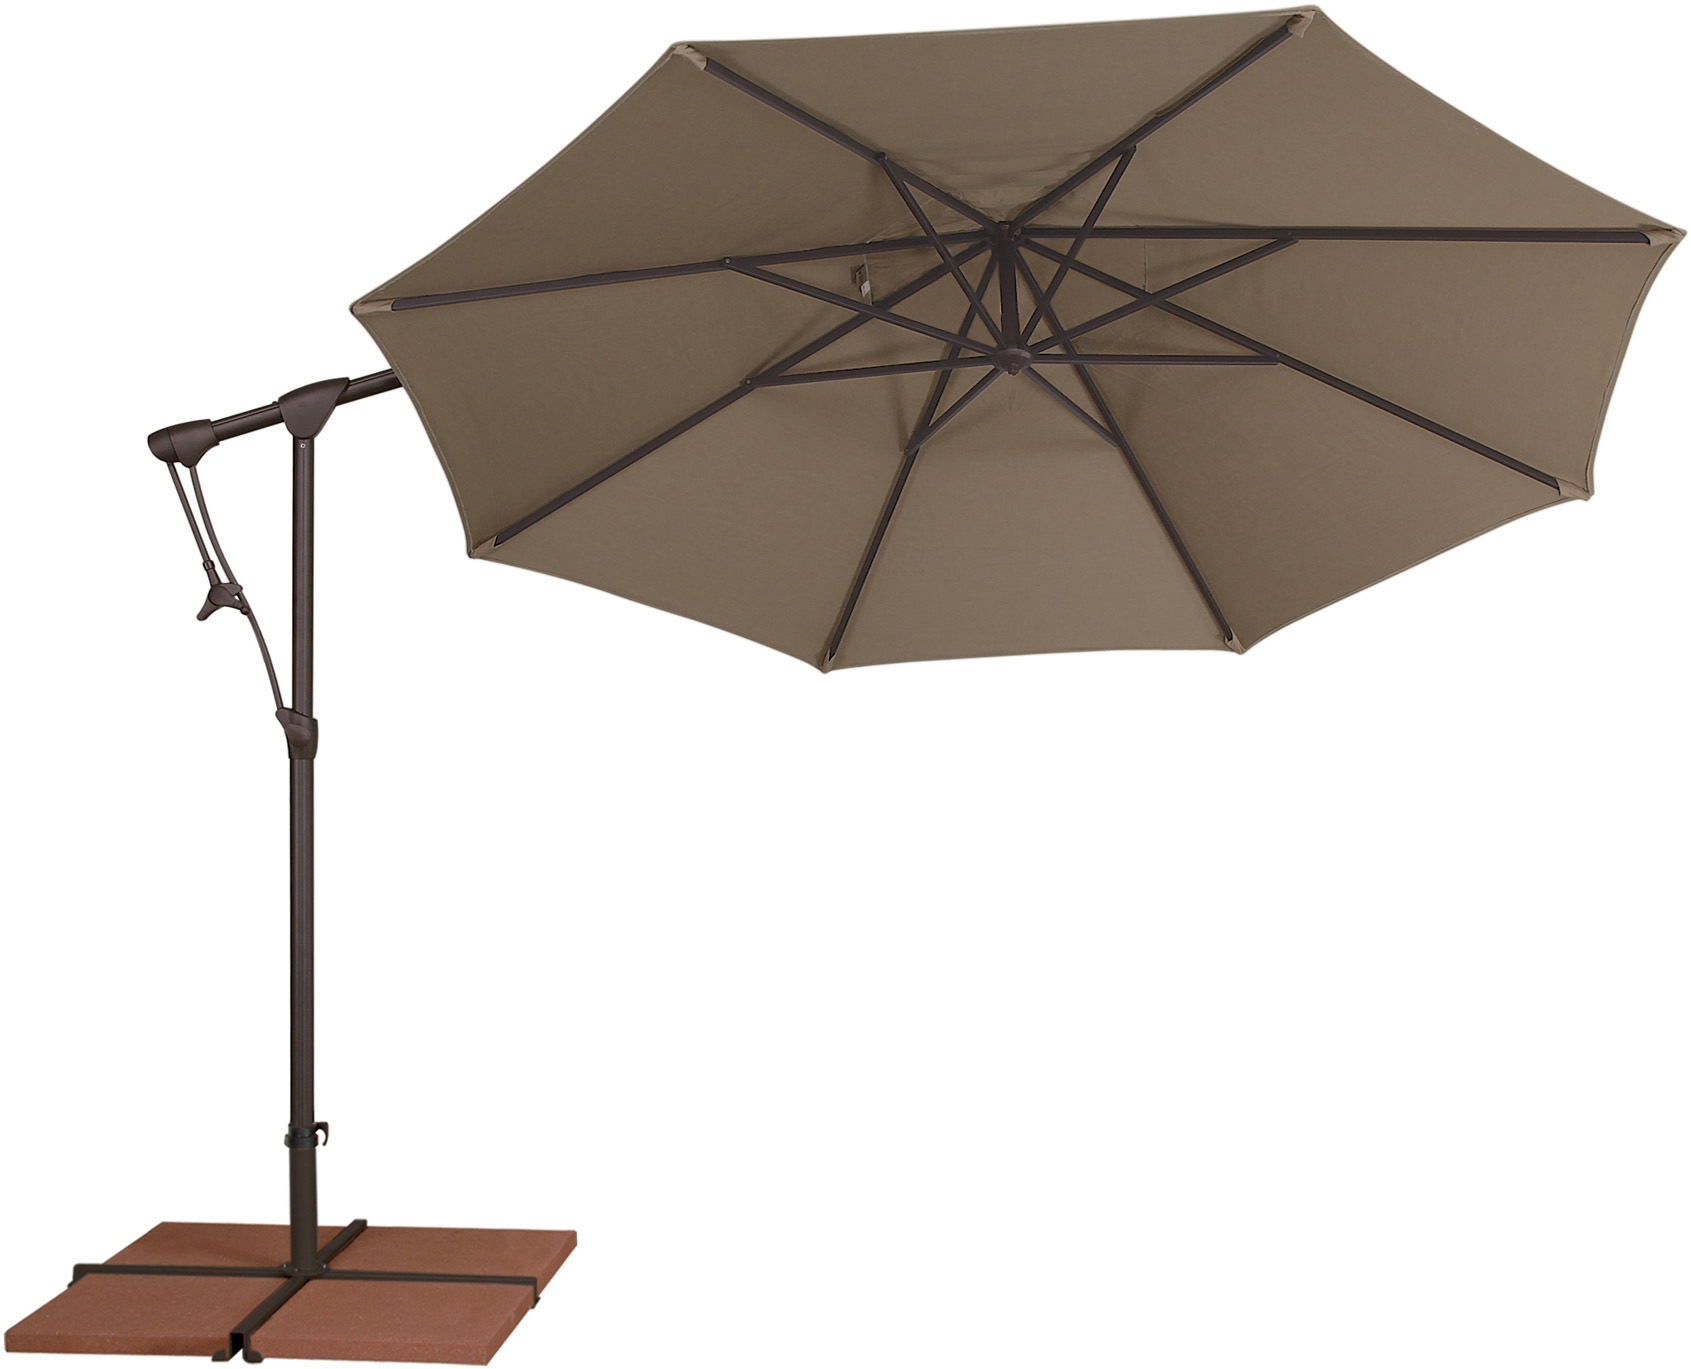 inspiring cantilever patio umbrella in tan with black stand for patio furniture ideas